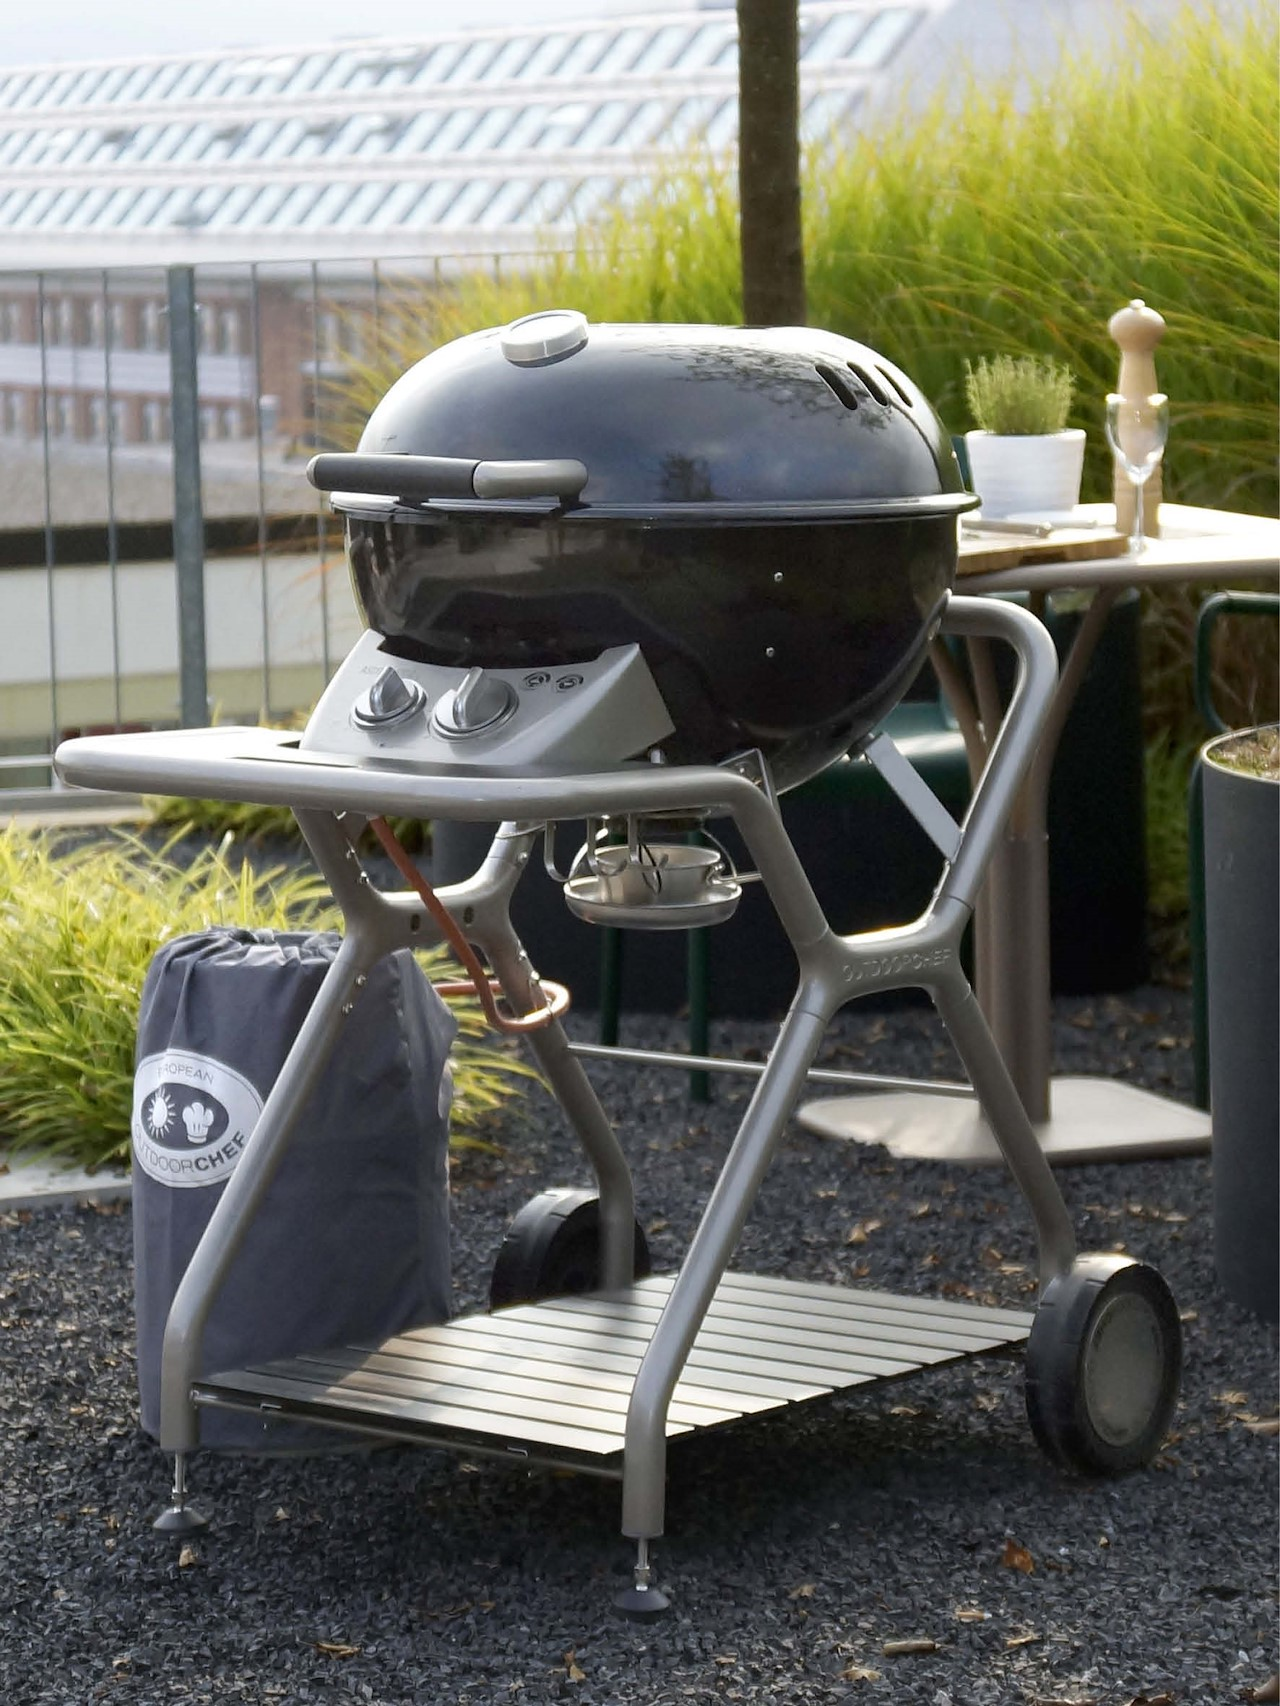 Houtsnippers Bbq Welke Bbq Is Jouw Perfect Match Tuincentrum Pelckmans